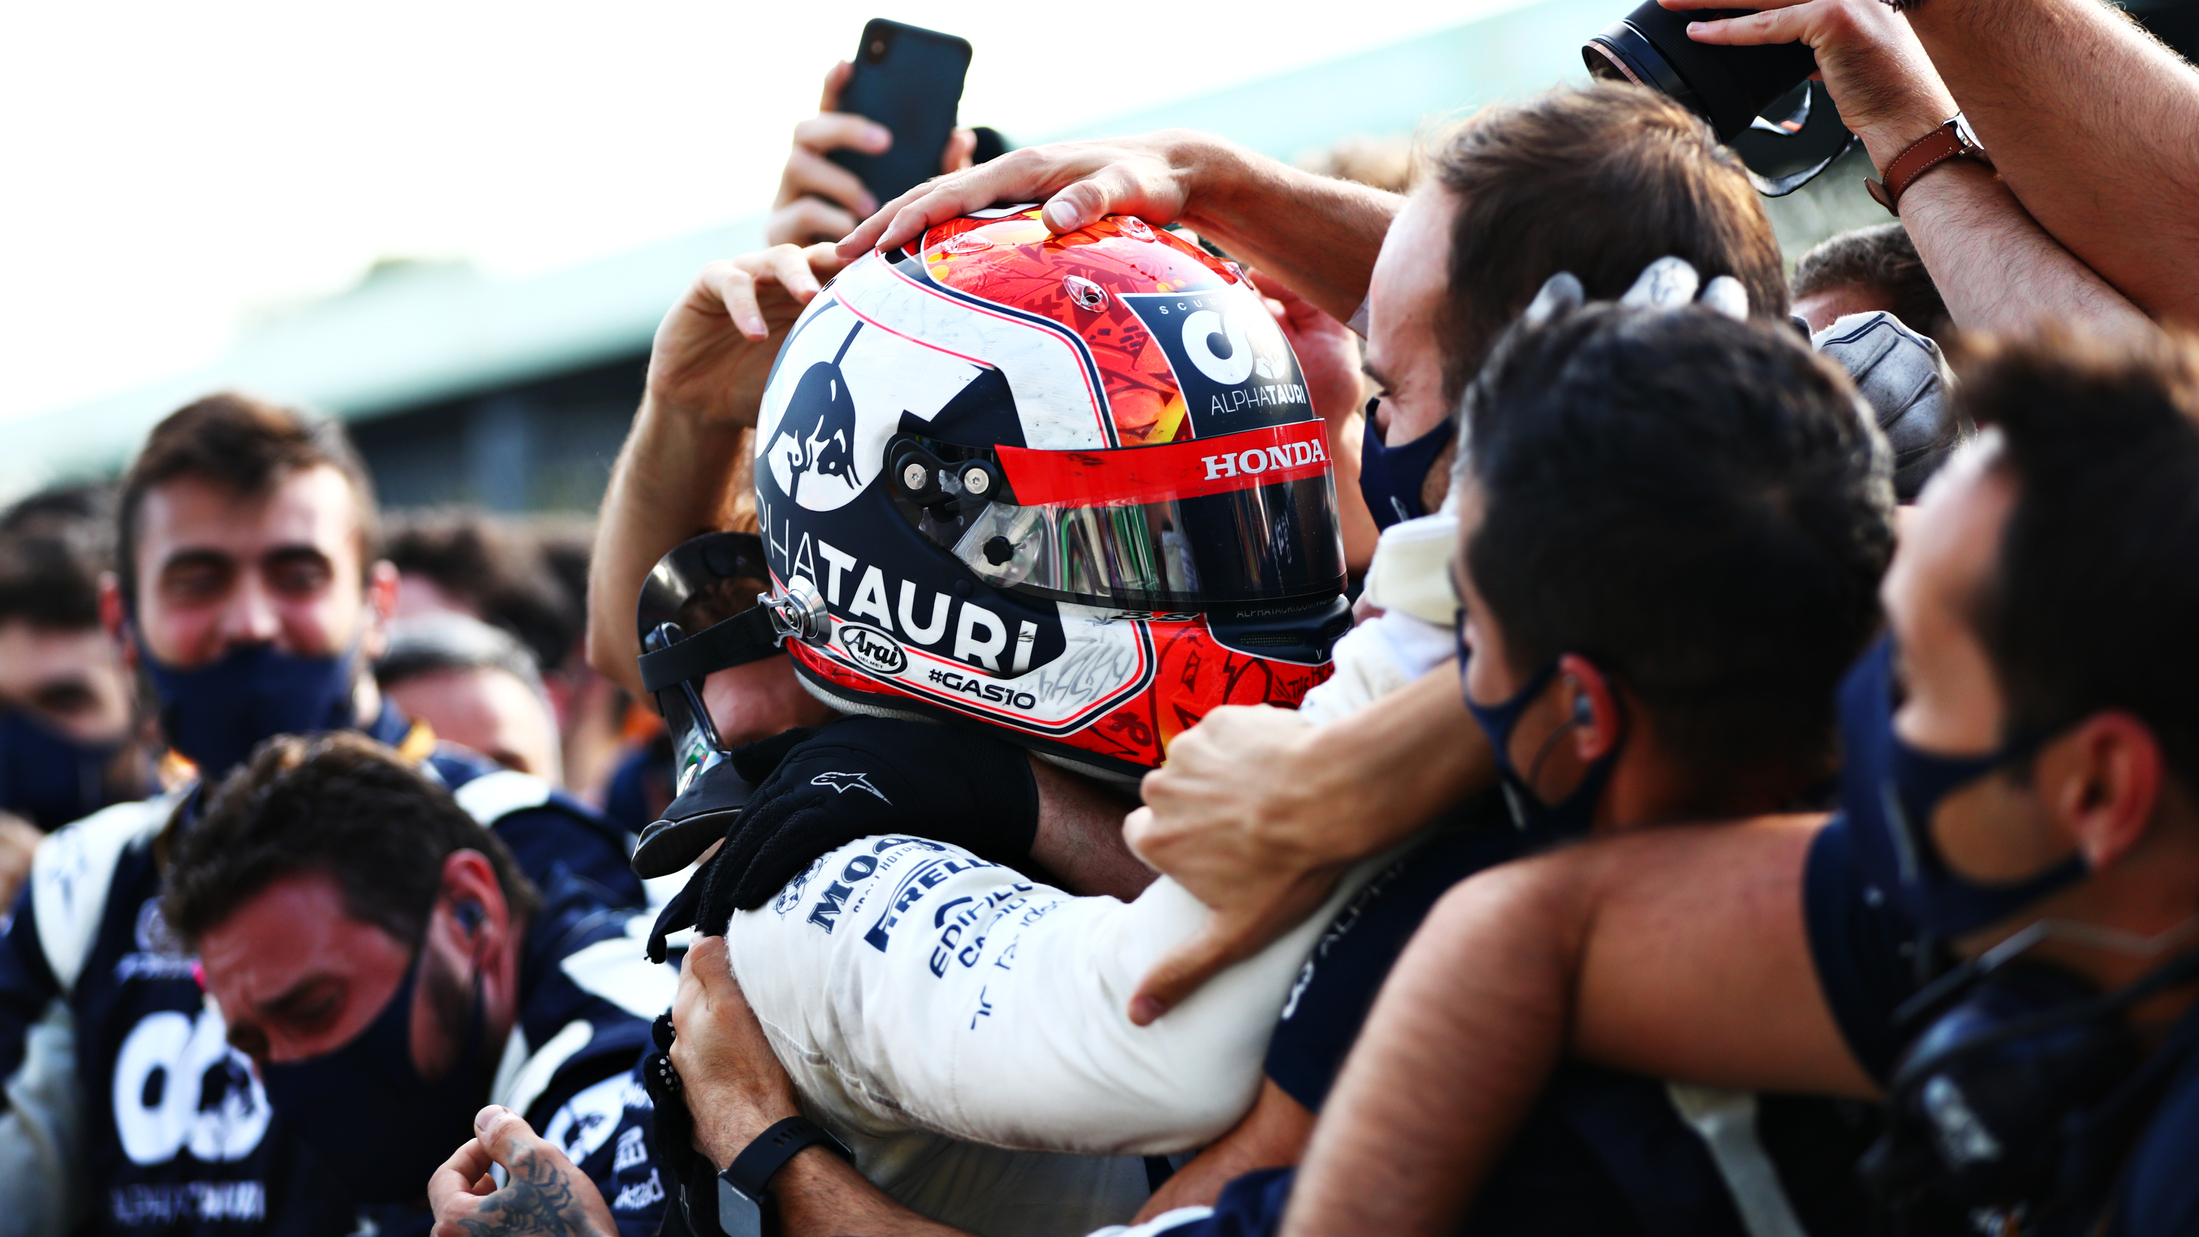 Italian Grand Prix Report 2020 and Highlights: Pierre Gasly wins first victory in Monza from Sainz as Hamilton leaves P7 penalty kick